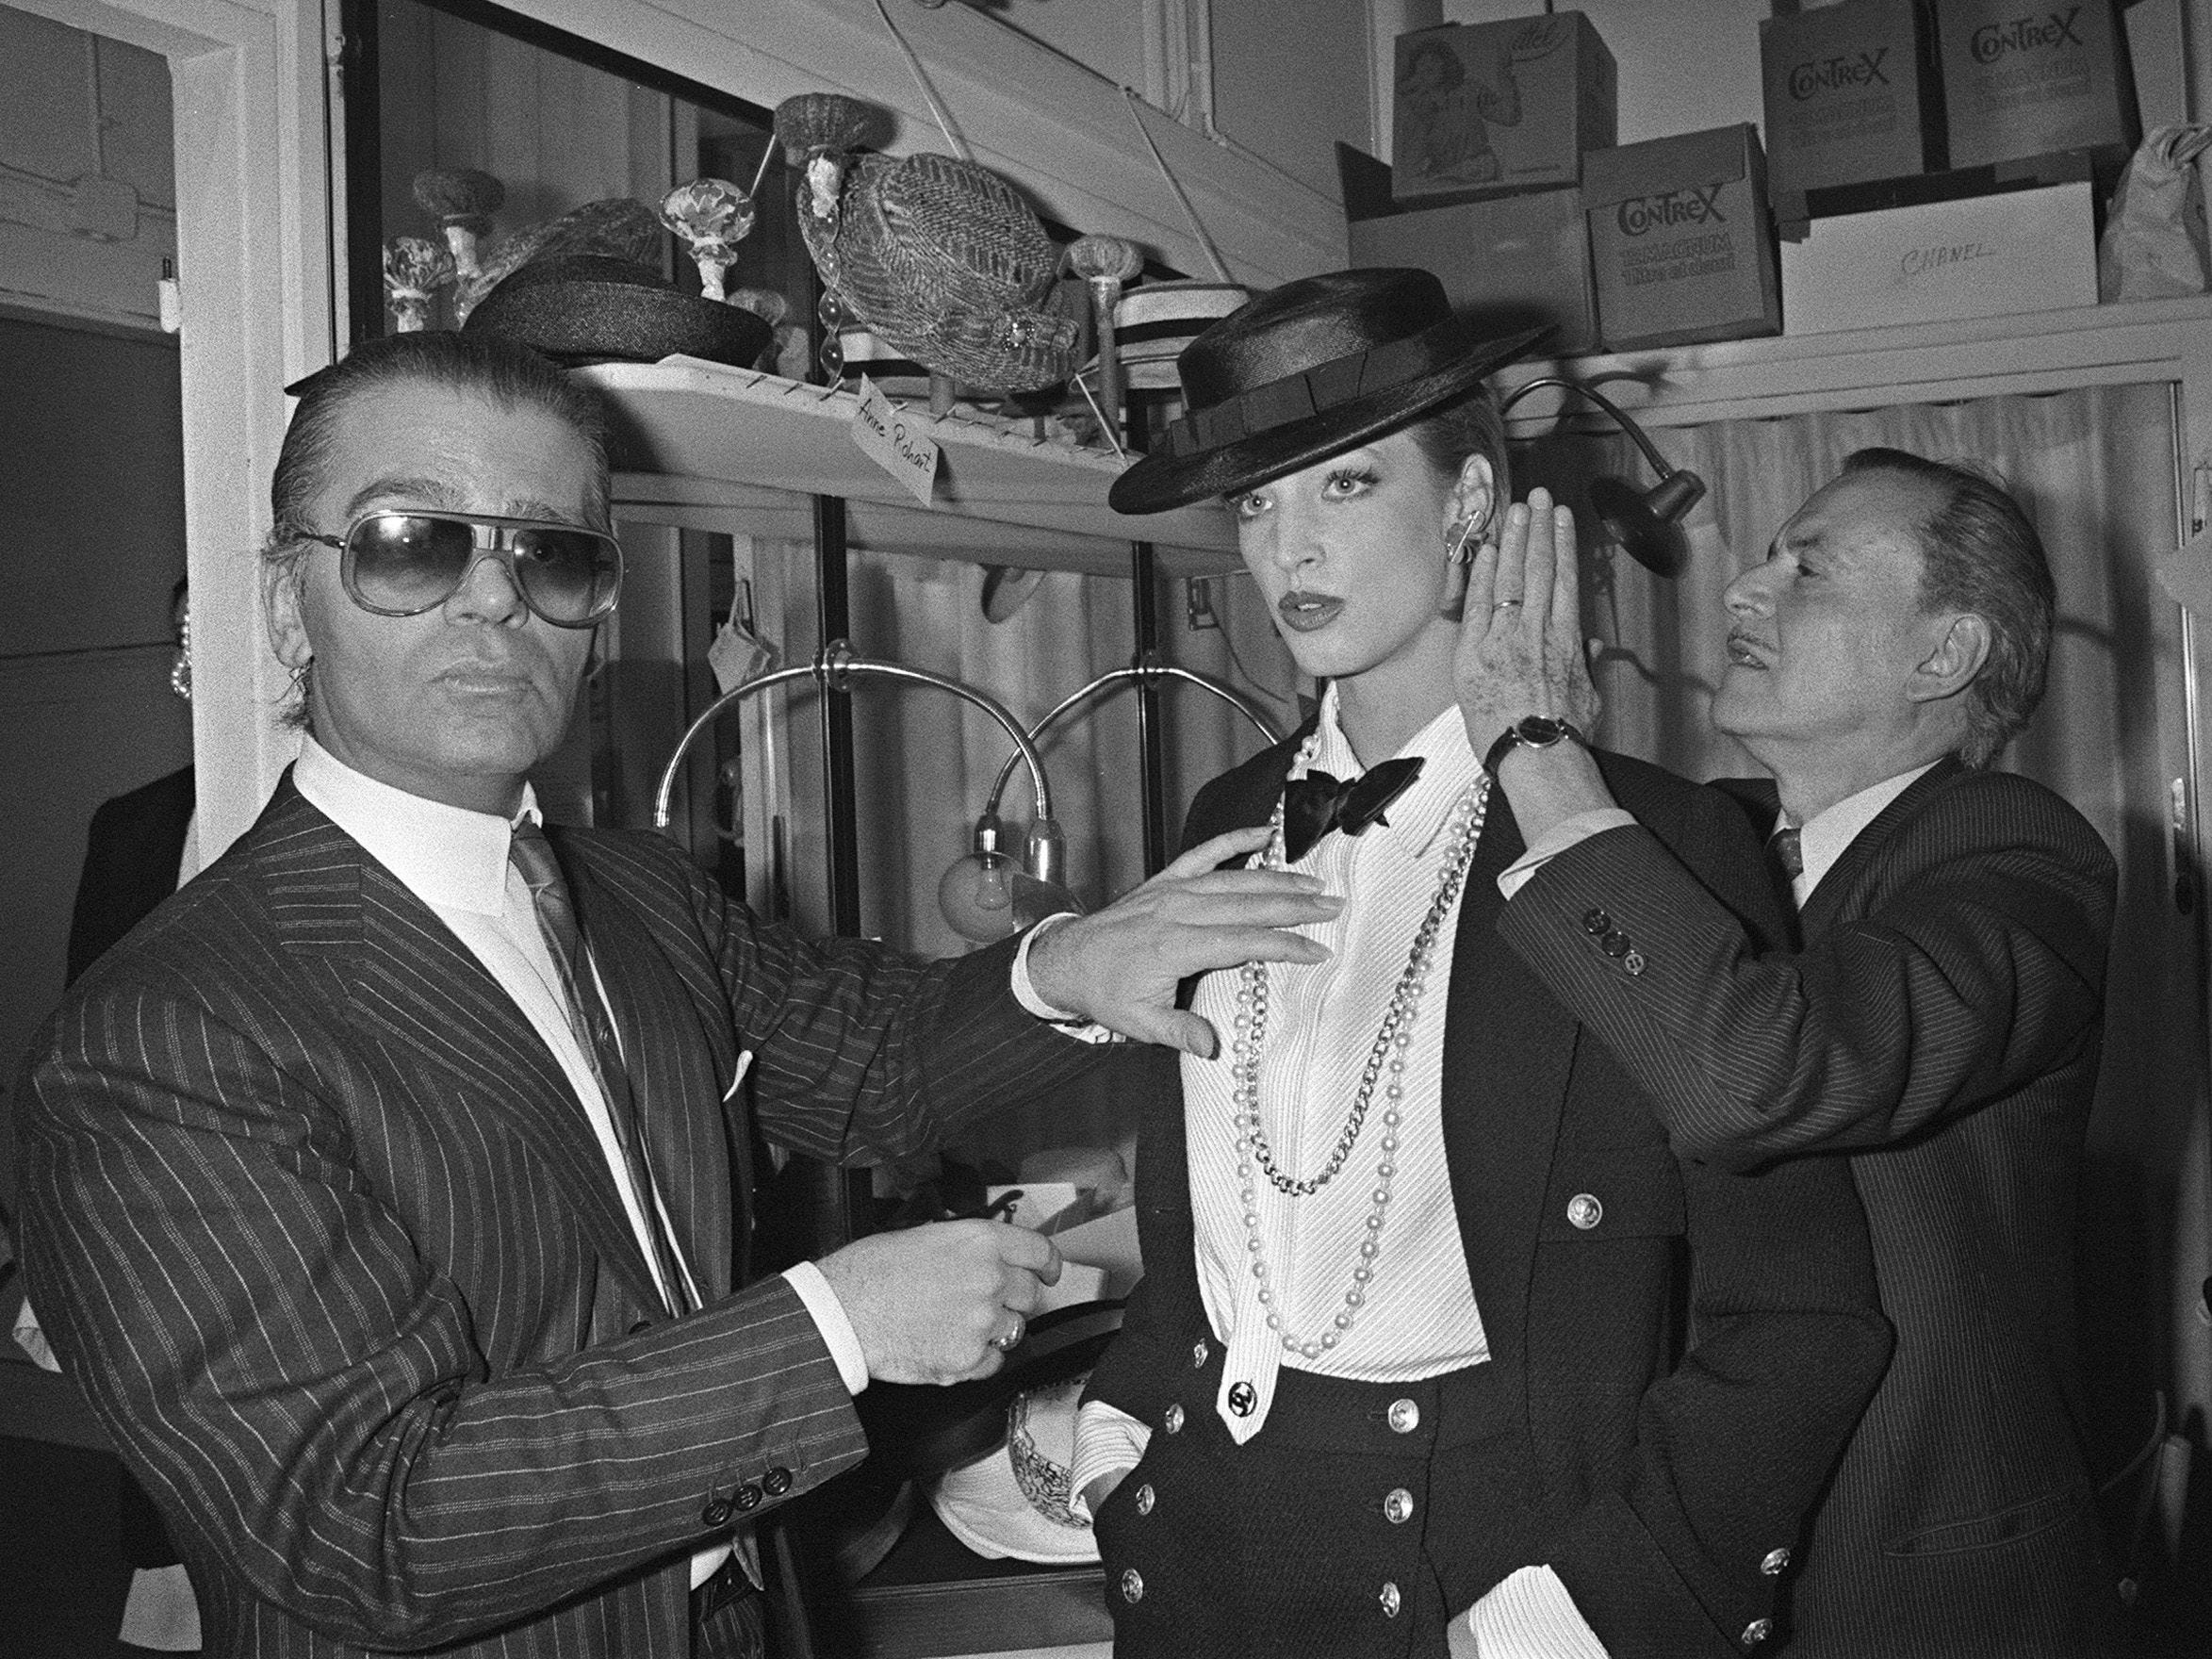 Karl Lagerfeld (L) and harstylist Alexandre (R) adjust a model's outfit during his 1st Chanel's Spring-Summer collection on Jan. 24, 1983.